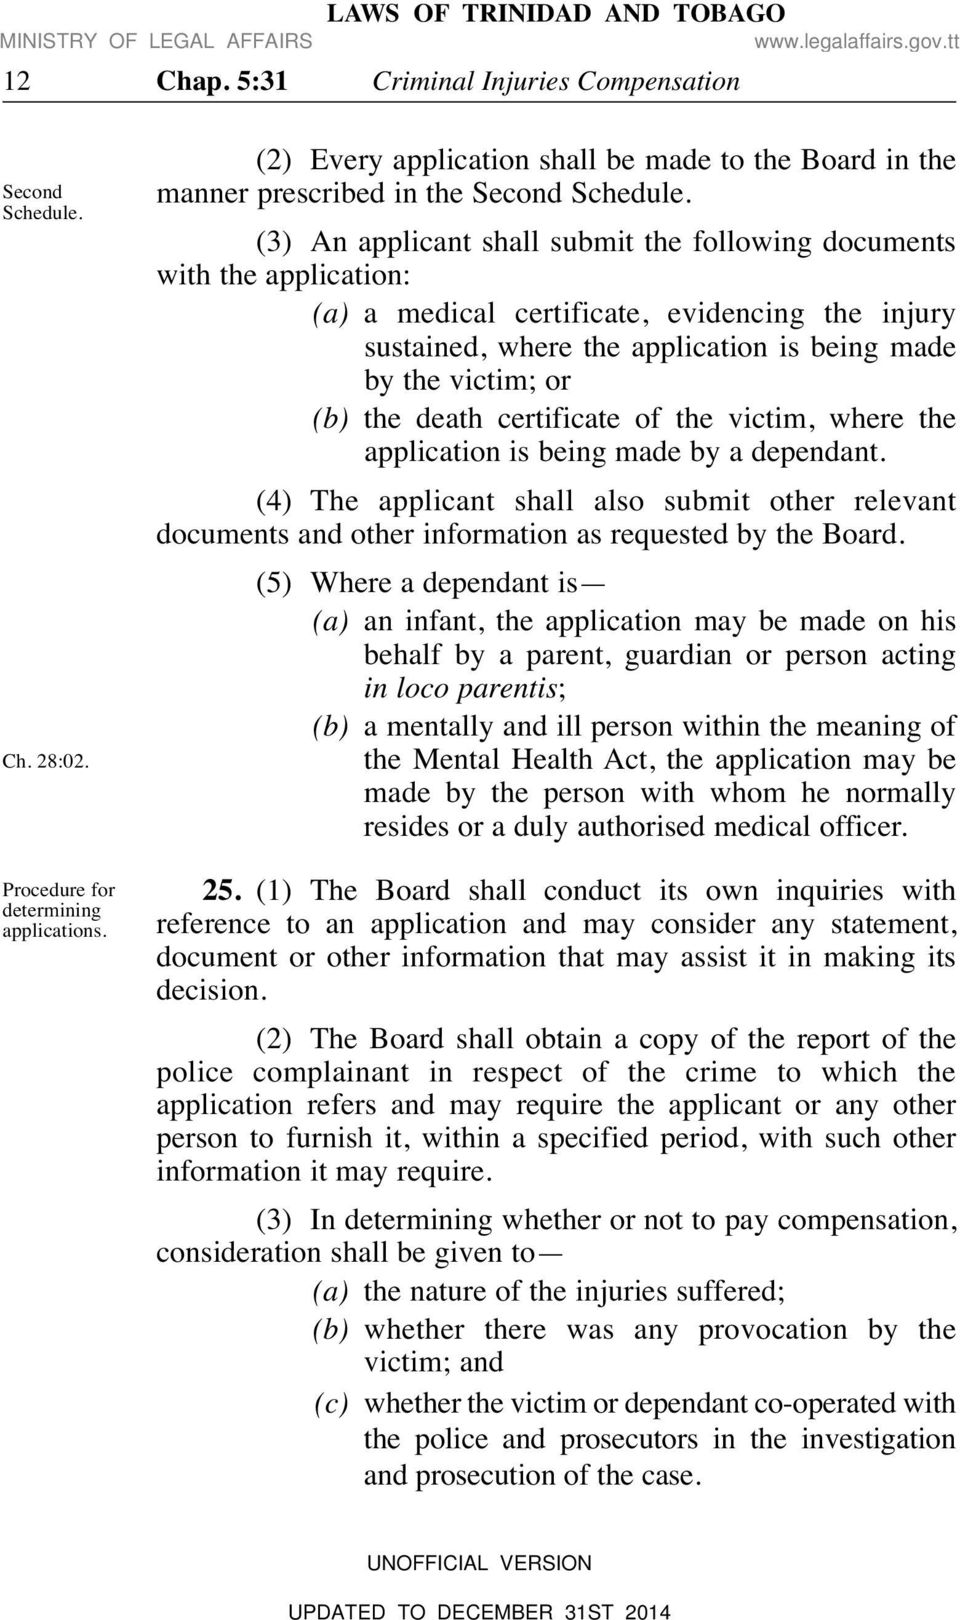 (3) An applicant shall submit the following documents with the application: (a) a medical certificate, evidencing the injury sustained, where the application is being made by the victim; or (b) the